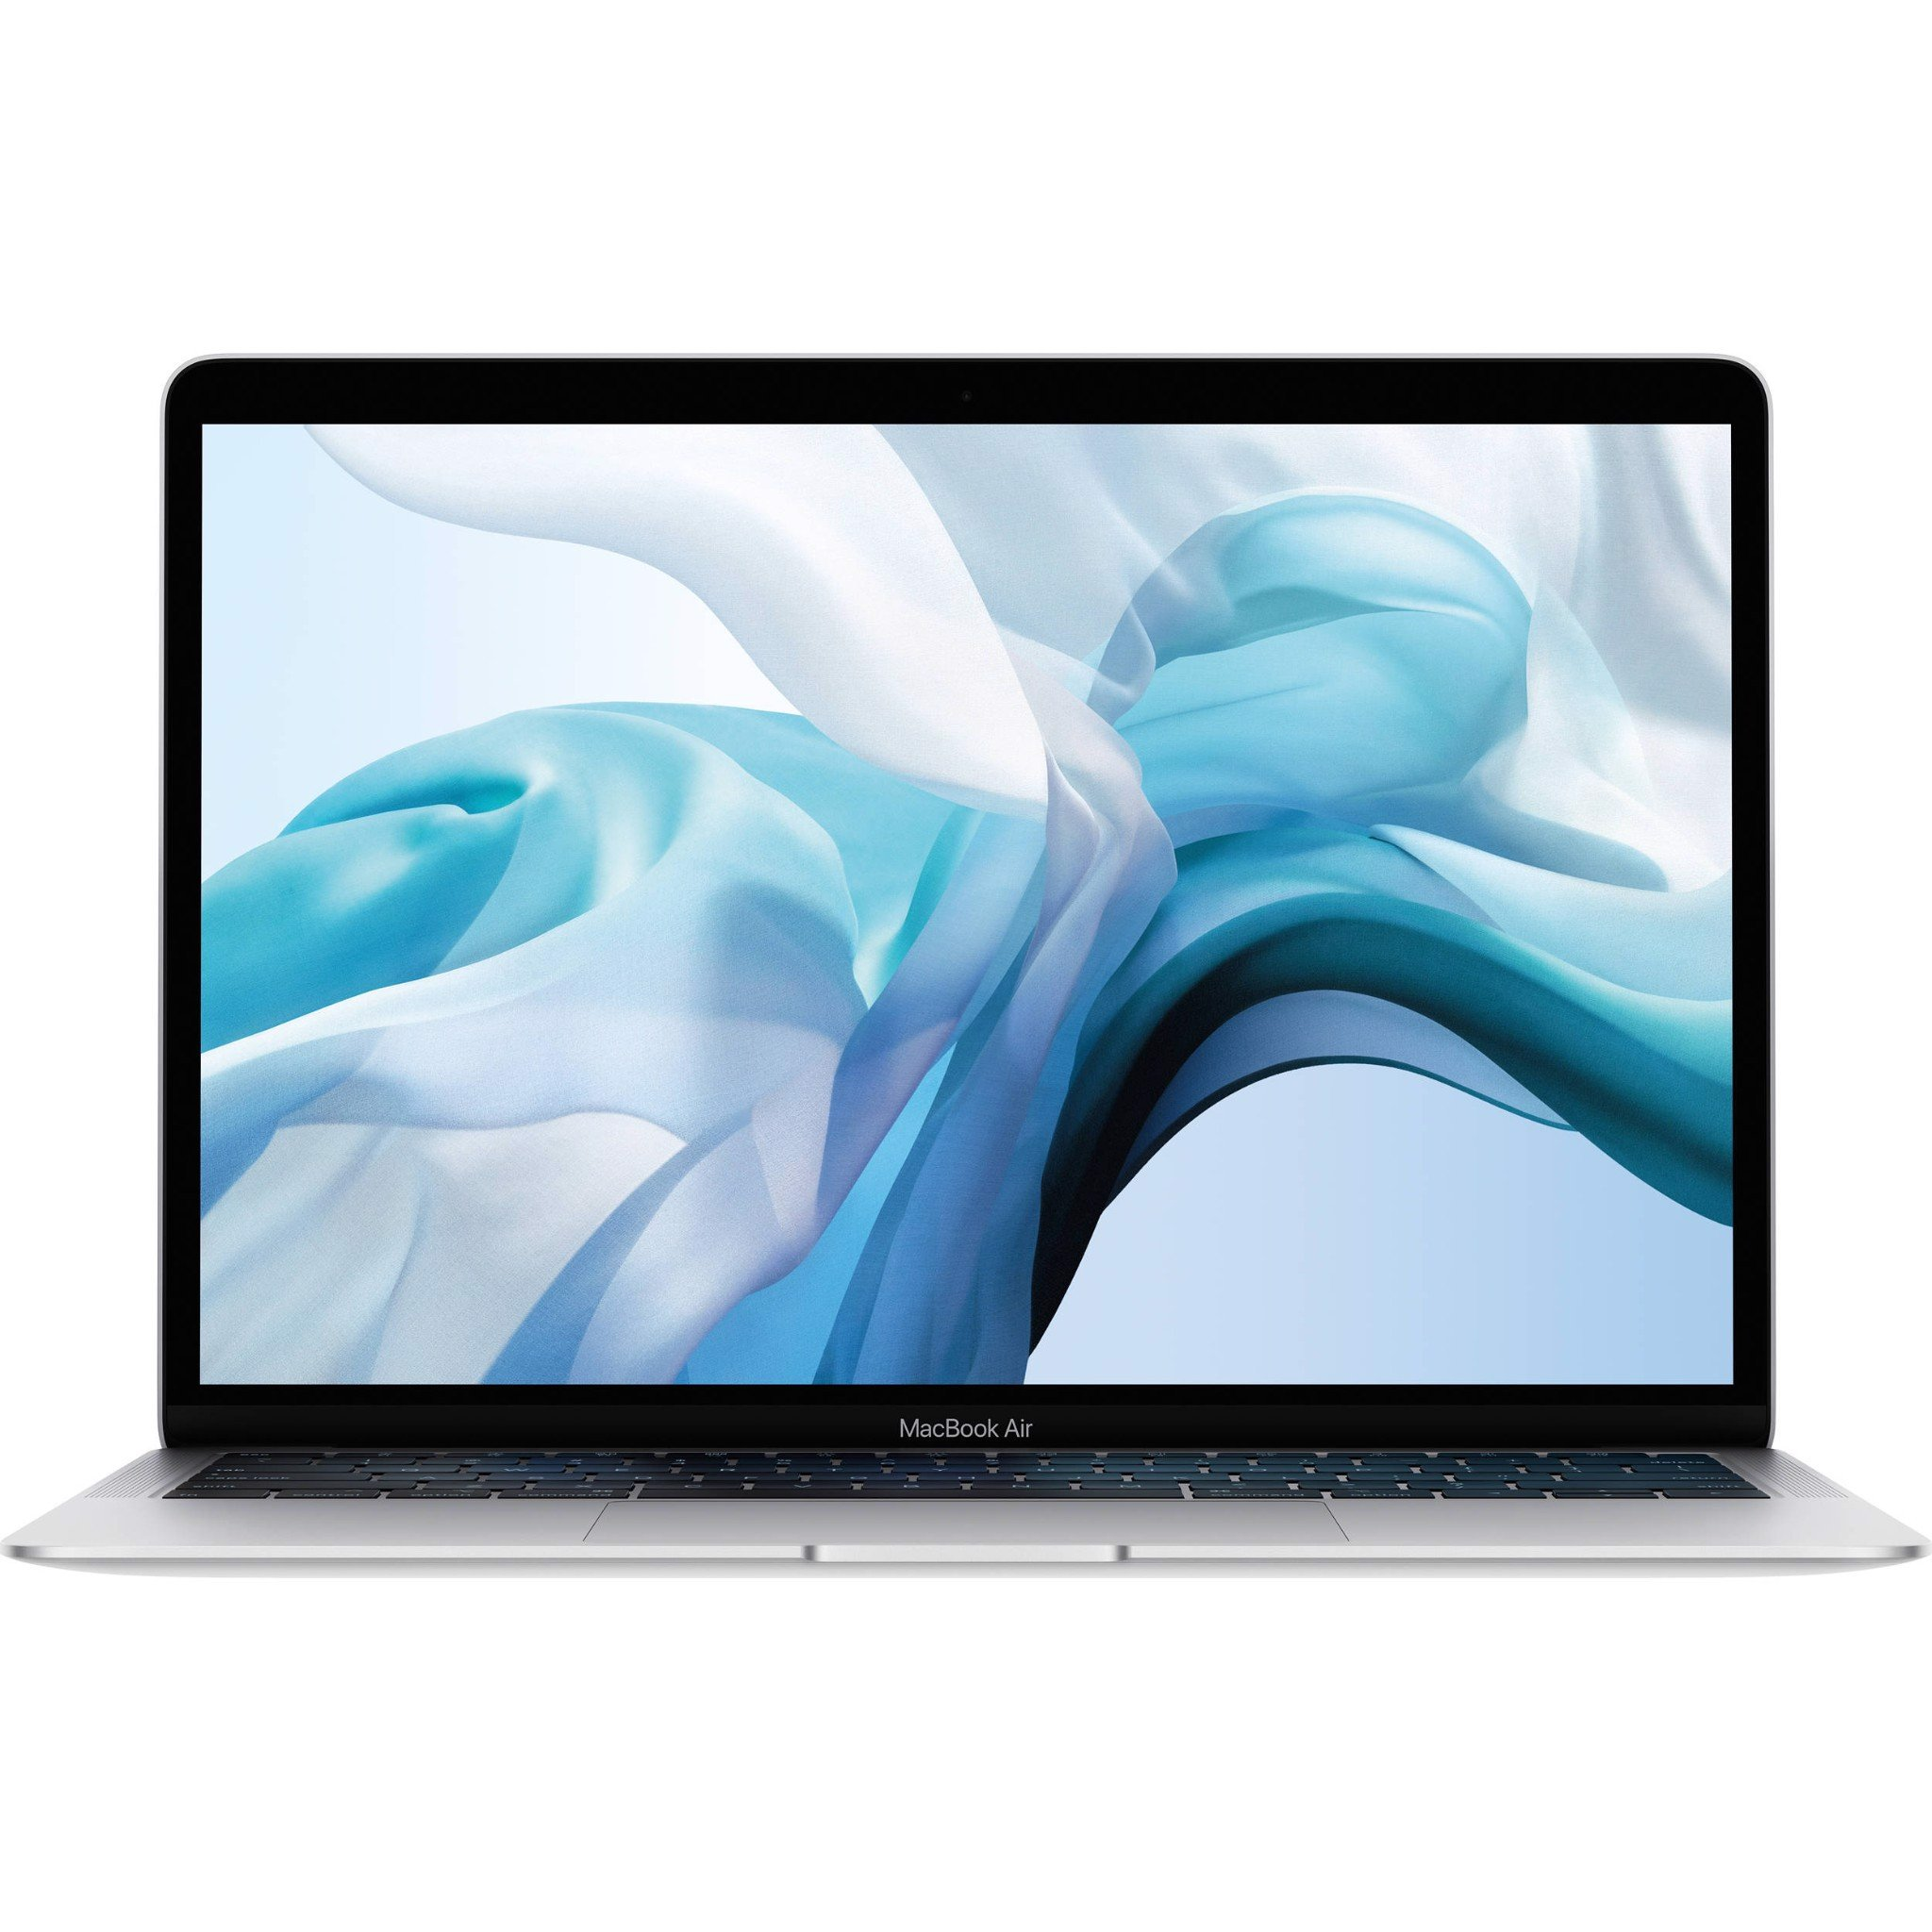 Macbook Air (13.3 Inch, 2019) - Core i5 / RAM 8GB / SSD 256GB